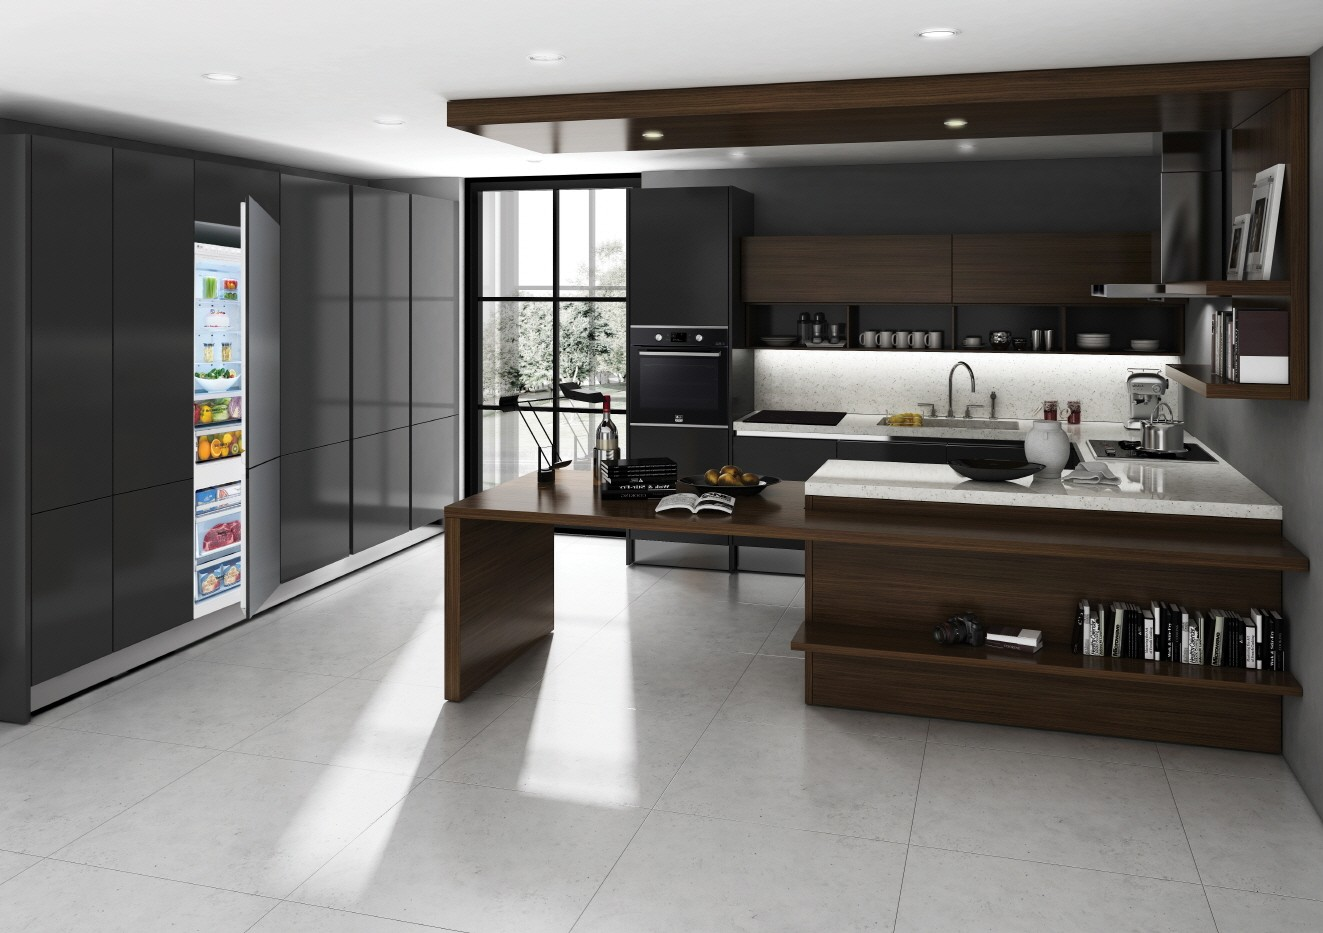 Kitchen black and dark wood cabinets featuring the complete European LG STUDIO package includes induction cooktop, oven and refrigerator.